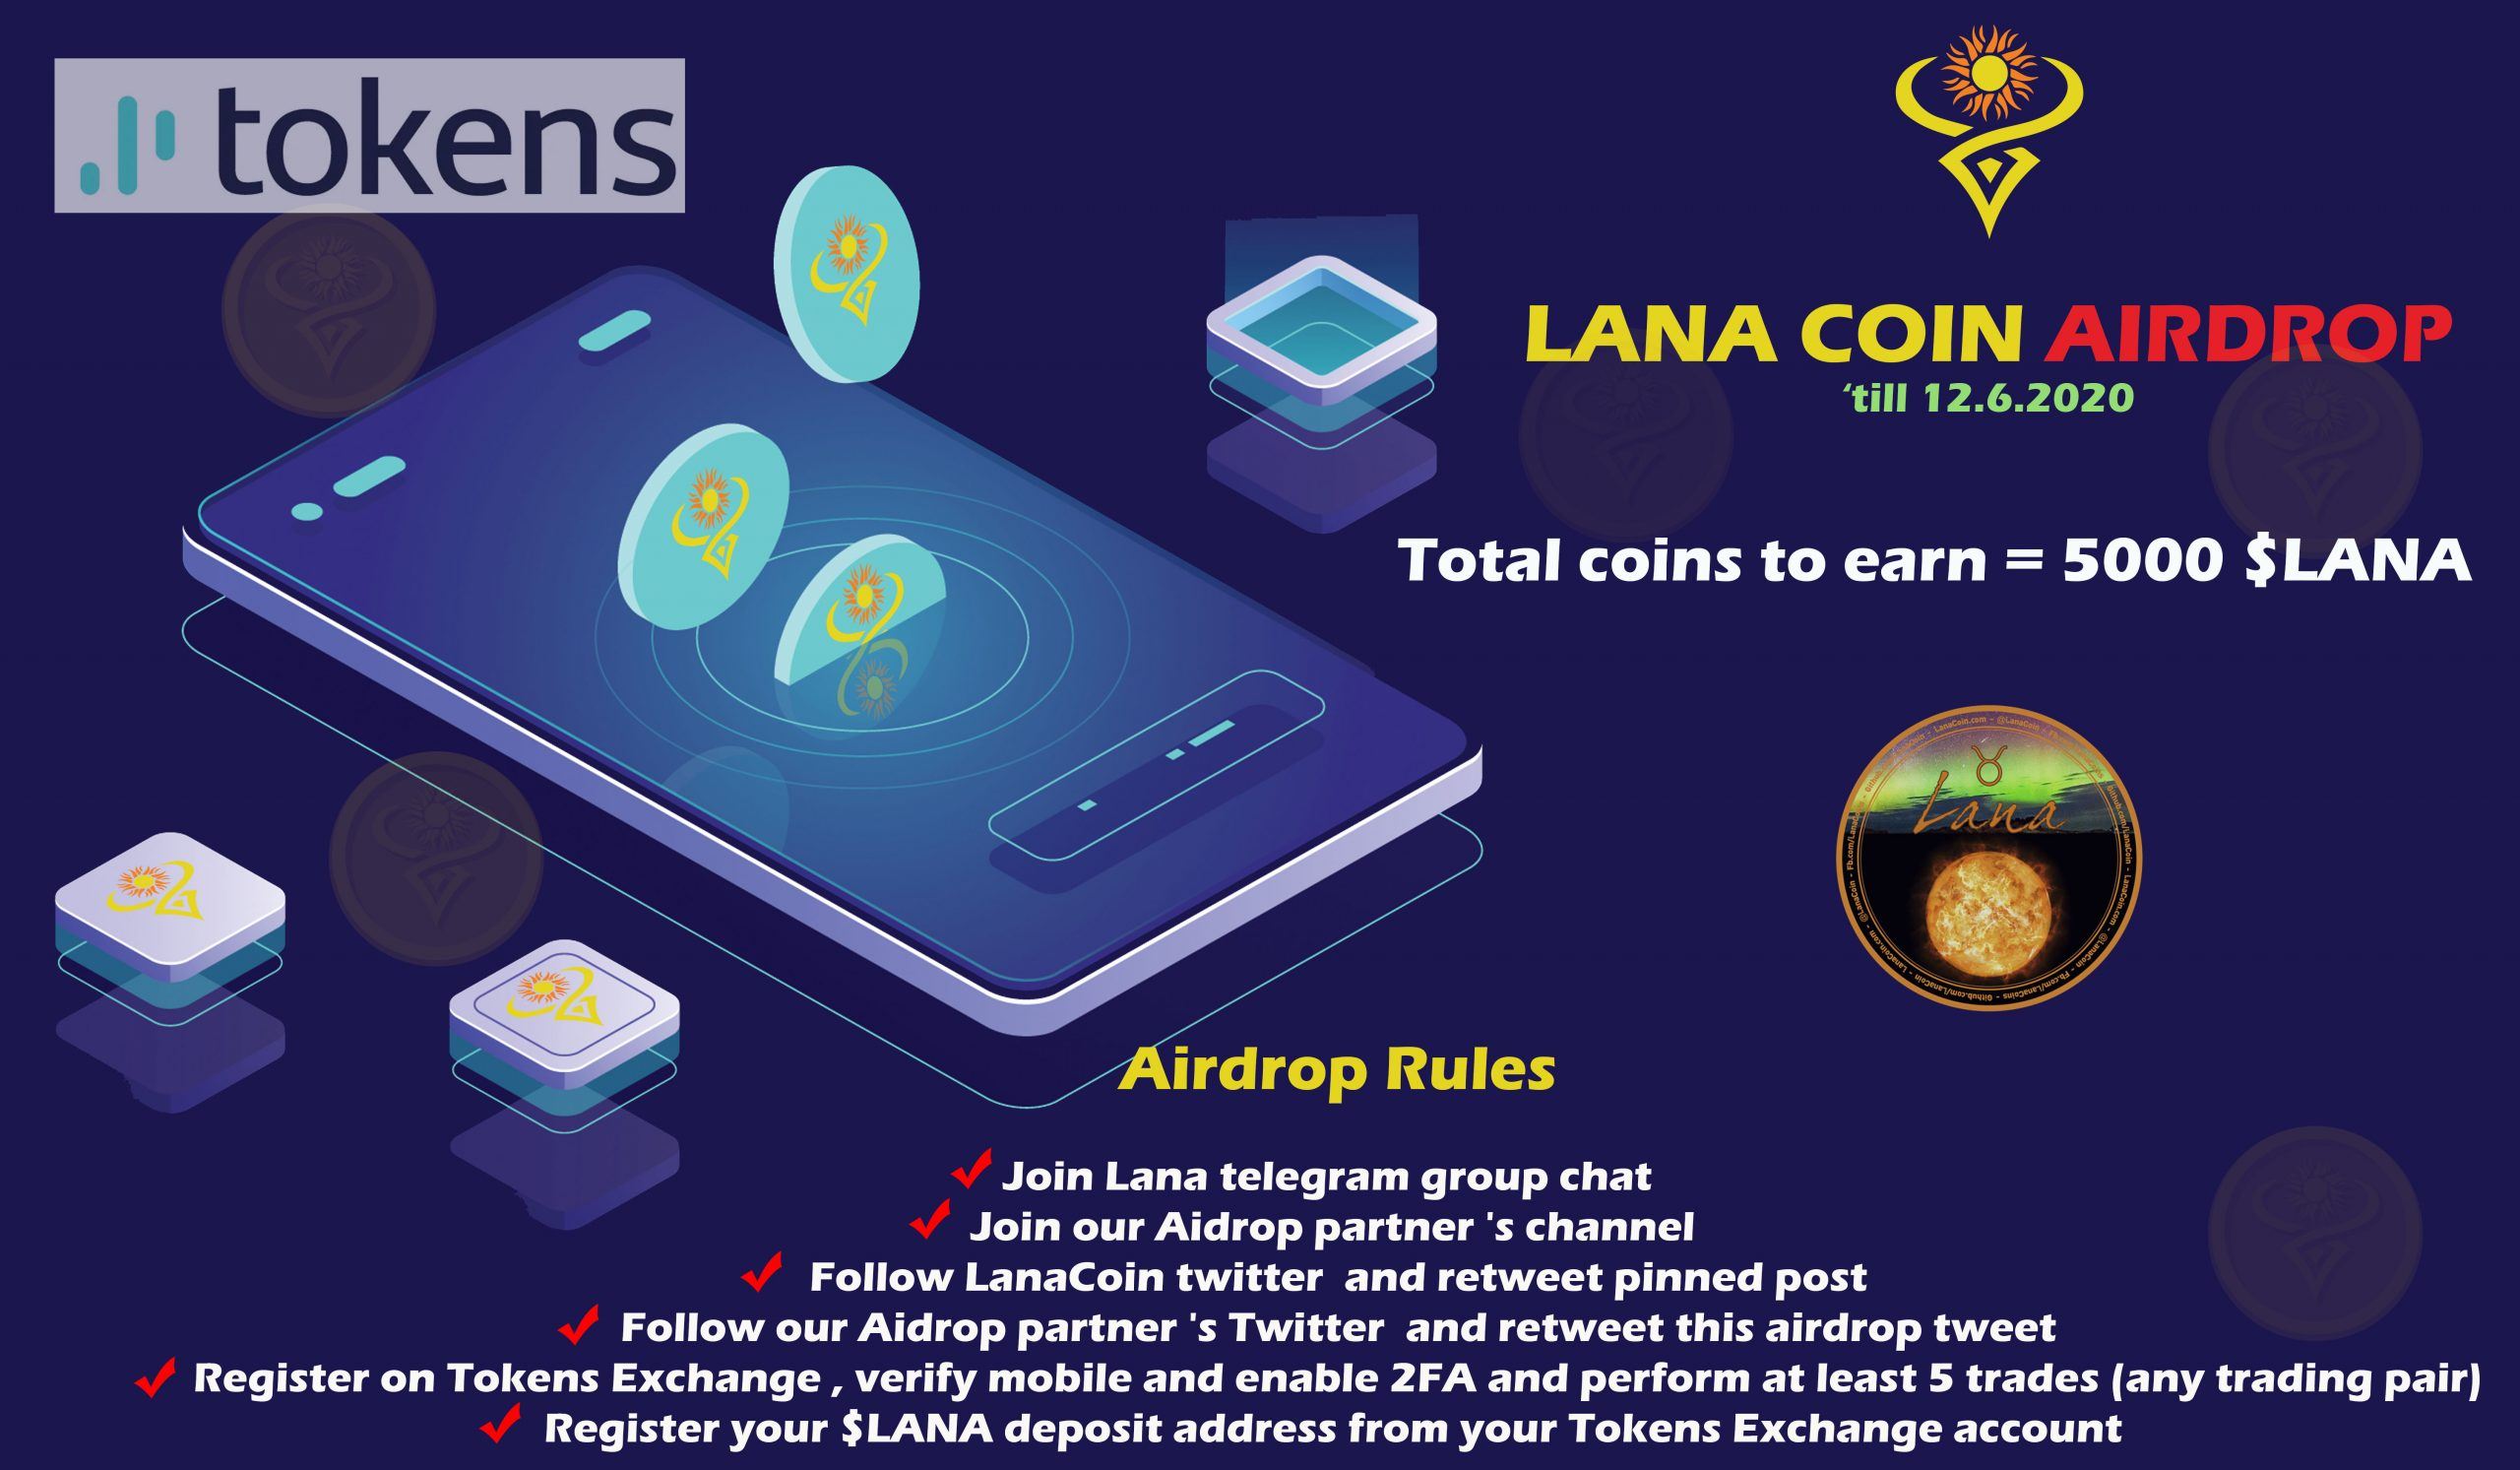 Incoming first ever LanaCoin airdrop on Telegram